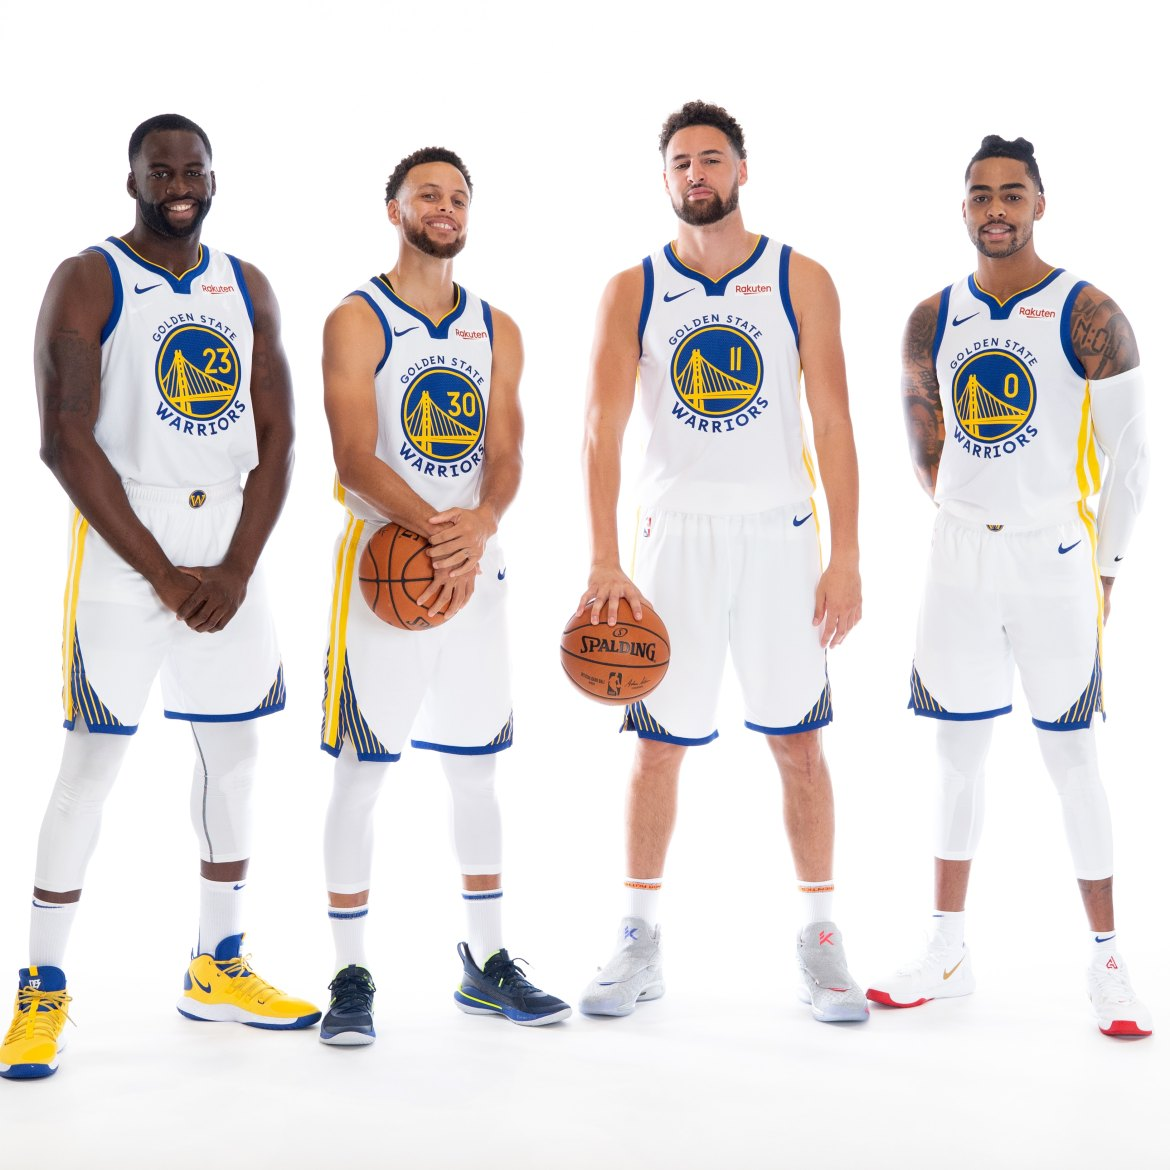 Draymond Green #23, Stephen Curry #30, Klay Thompson #11, and D'Angelo Russell #0 of the Golden State Warriors pose for a portrait during Media Day 2019